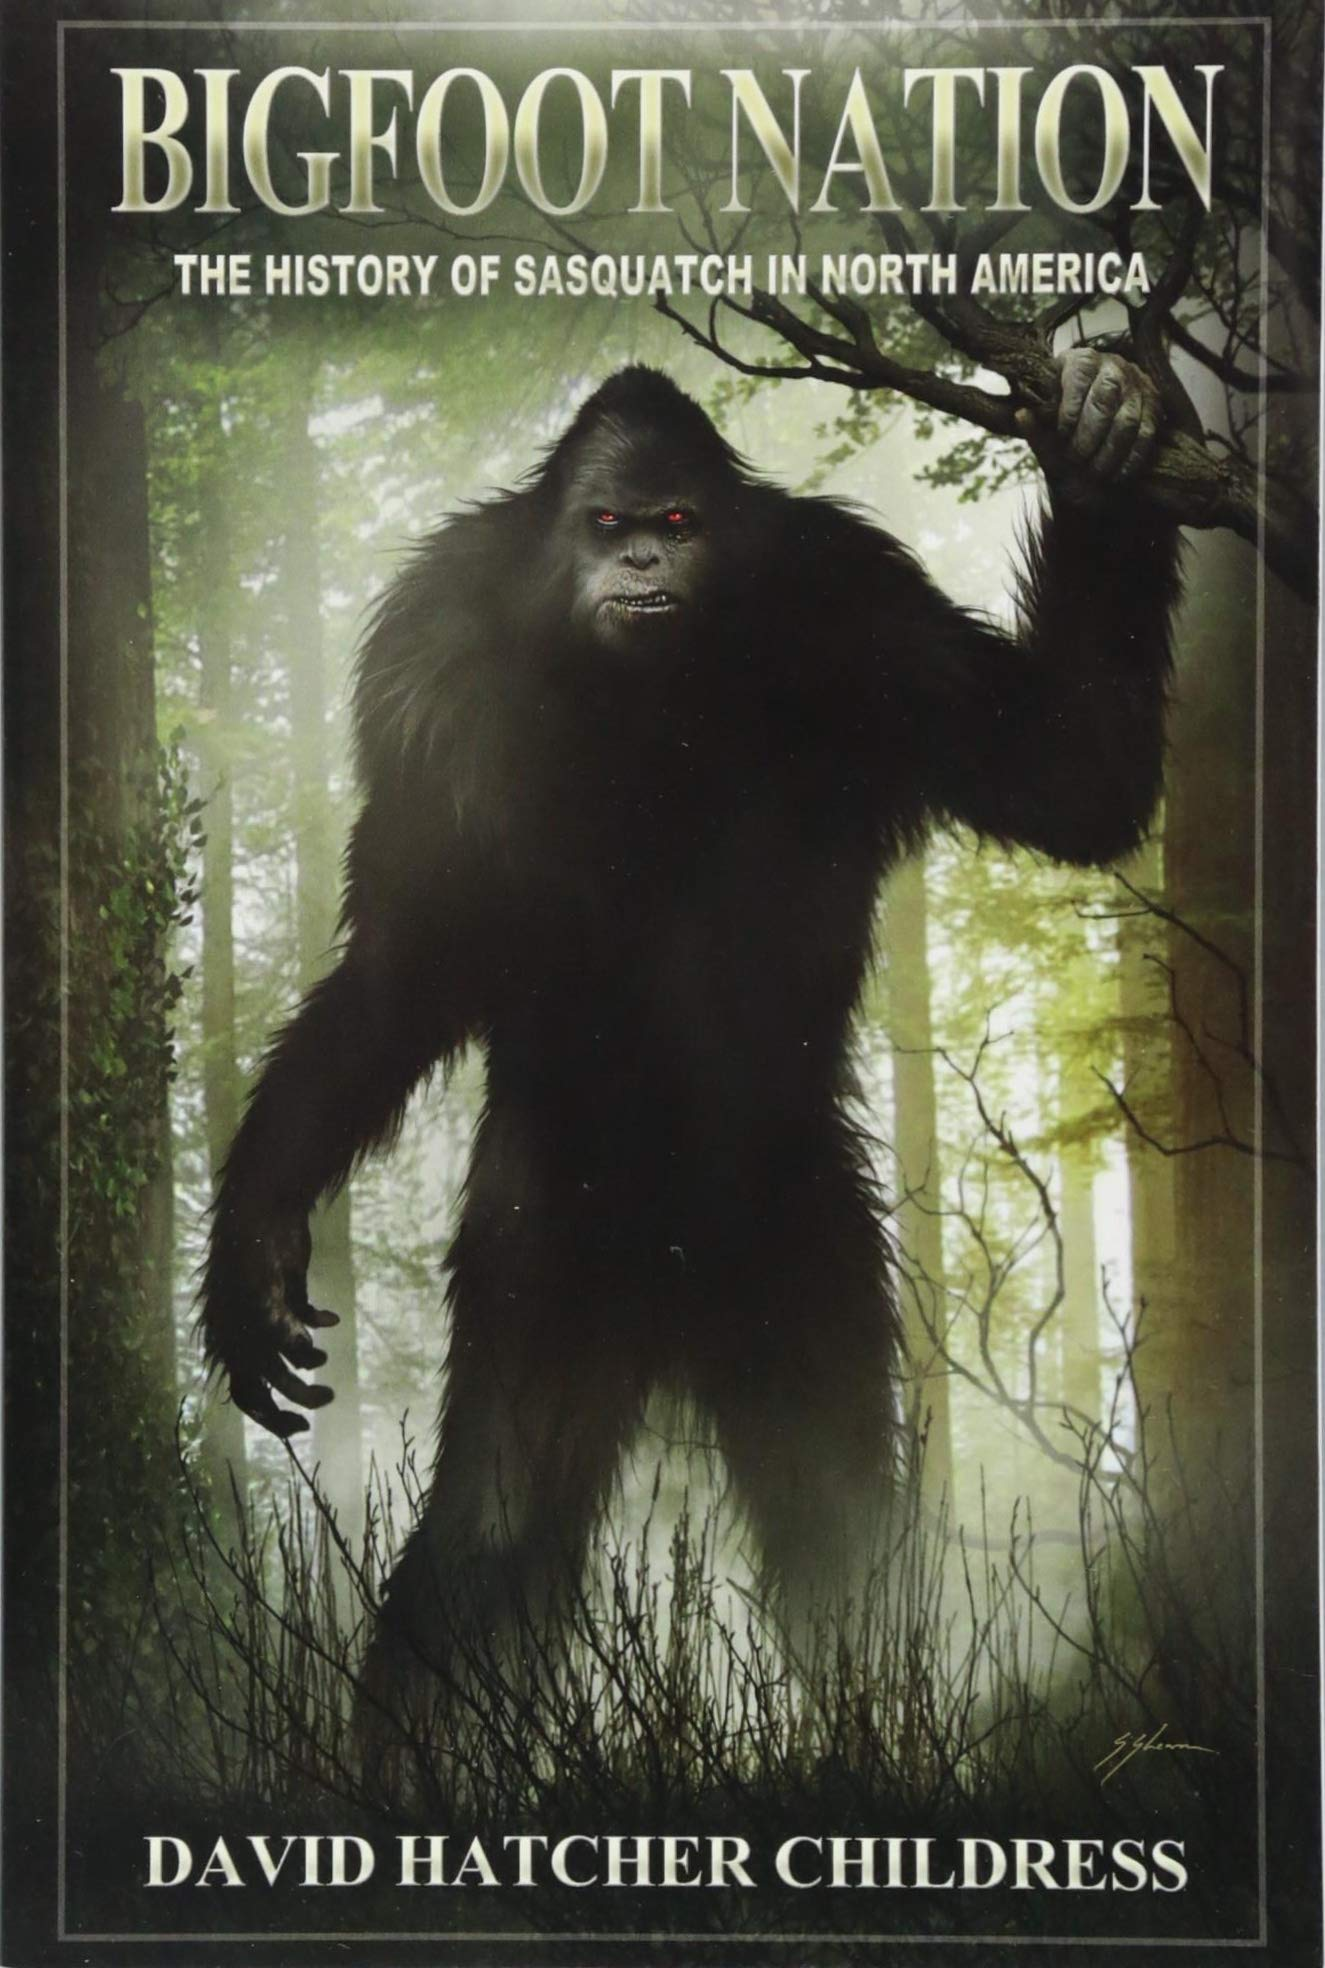 Bigfoot Nation The History of Sasquatch in North America